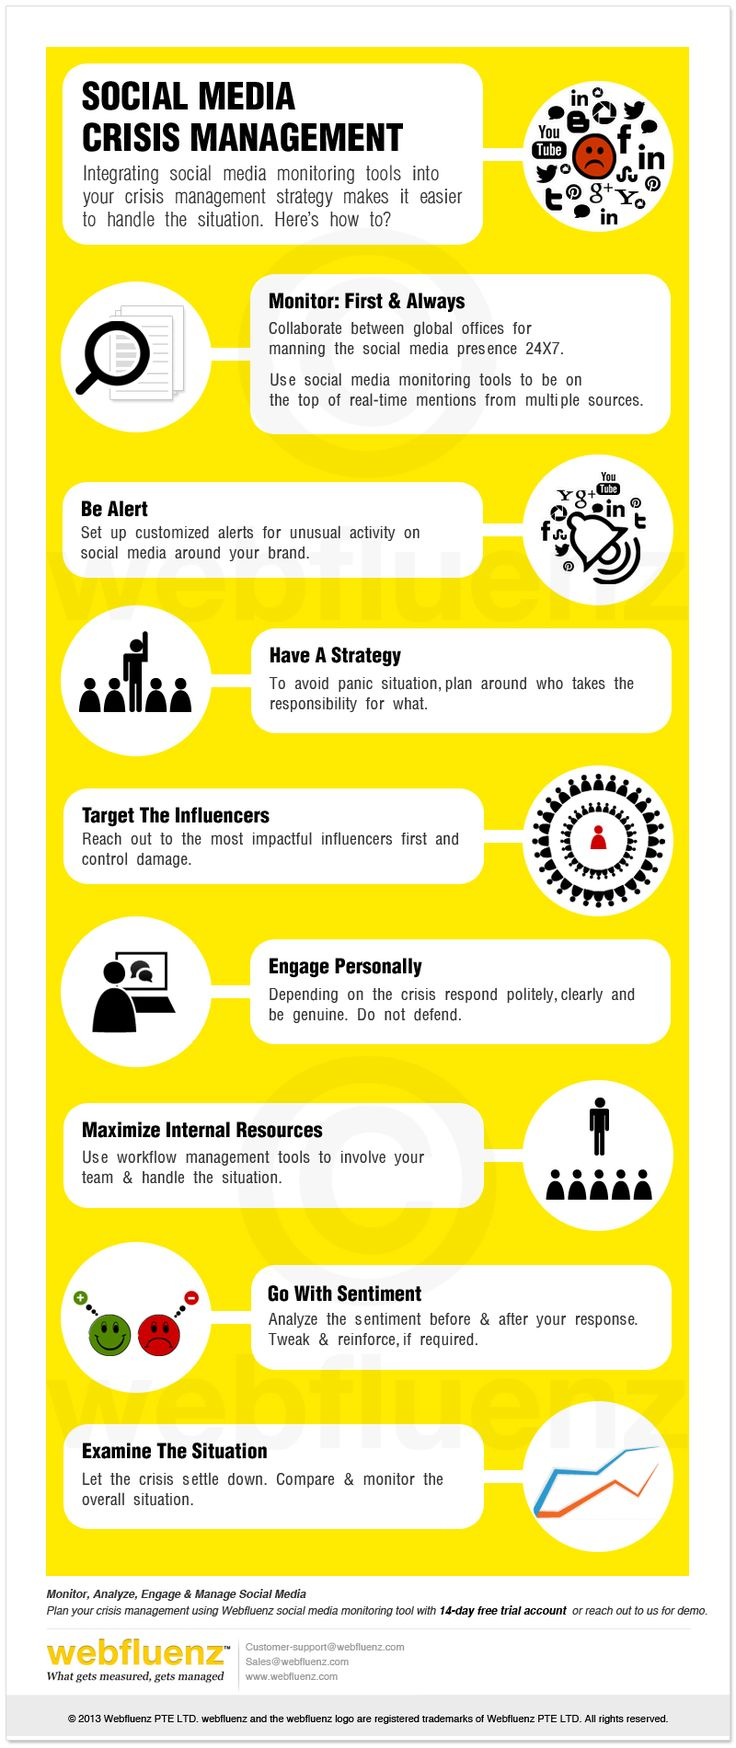 7 Steps To Manage Your Social Media Crisis [Infographic] image Social media crisis management infographics V5 opt b2